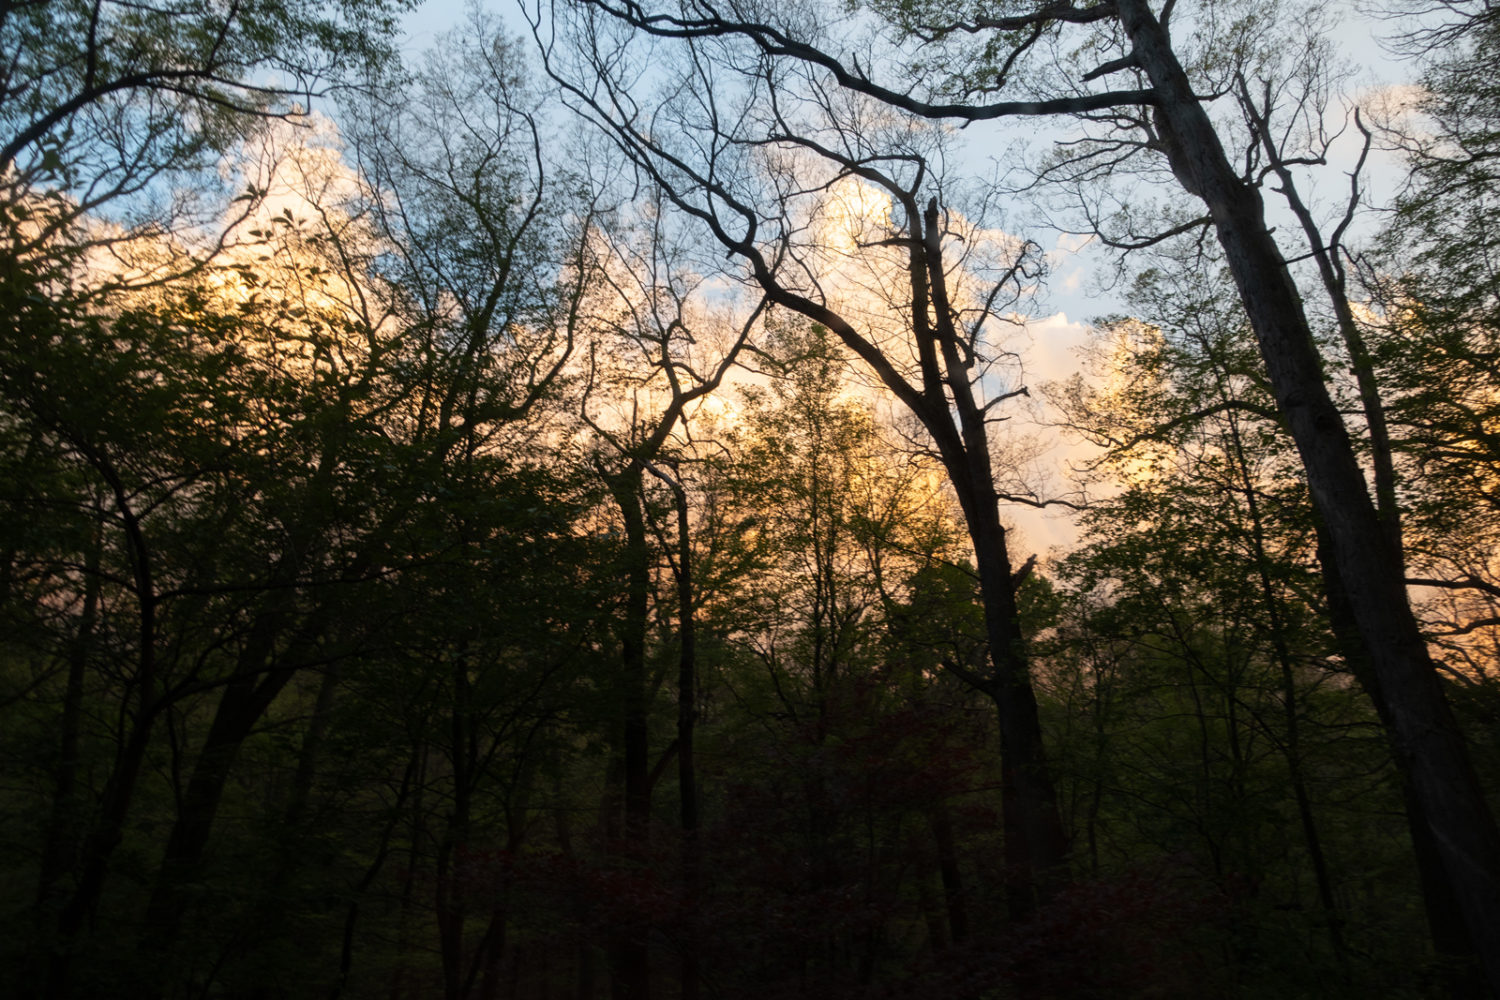 Sunset with bare trees, aftermath of the gypsy moths